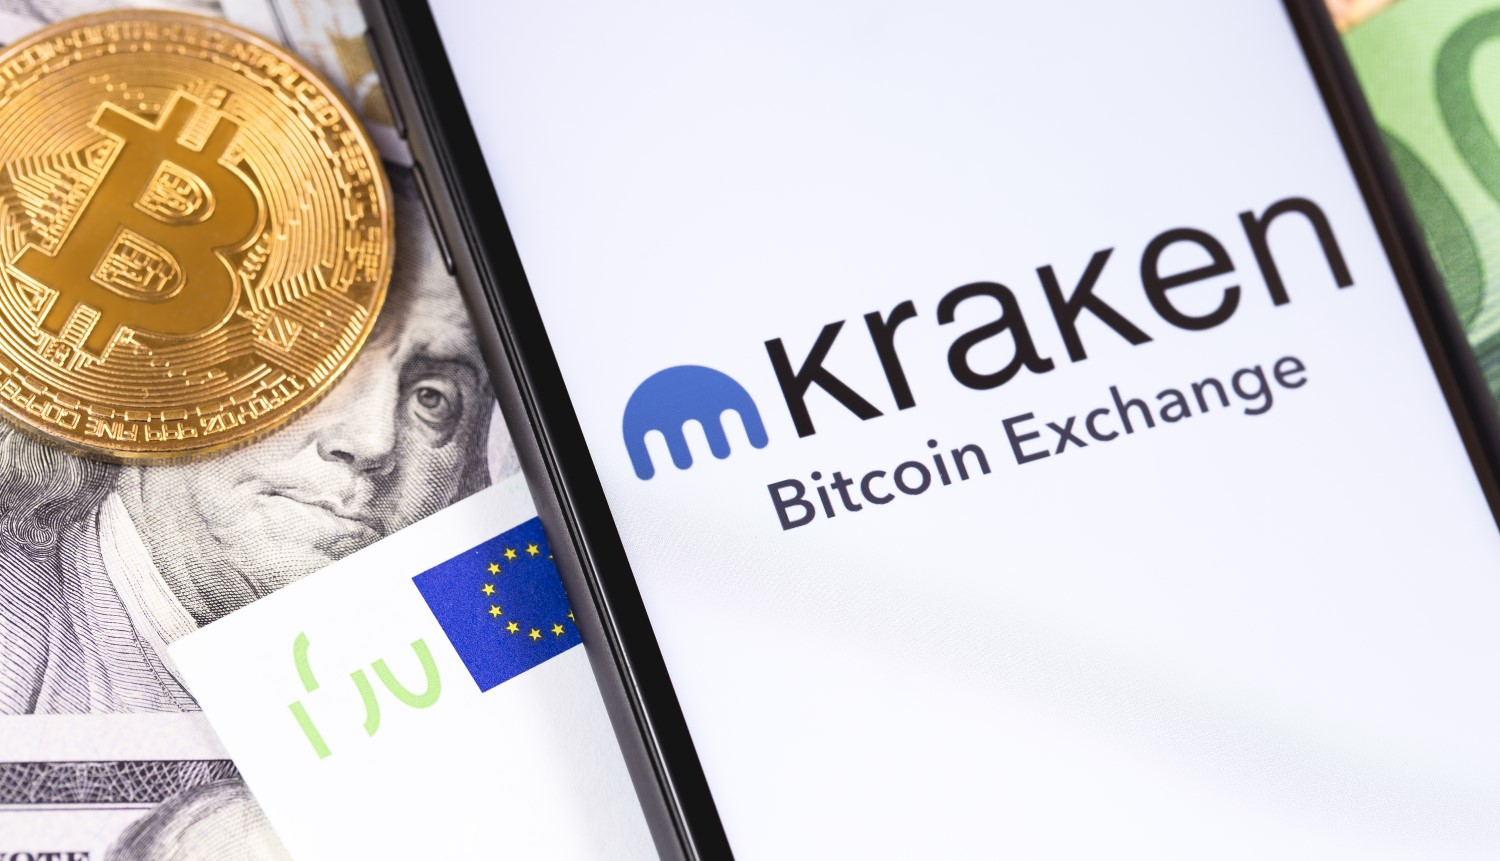 Picture of a gold bitcoin next to a smart phone with the Kraken app open on it